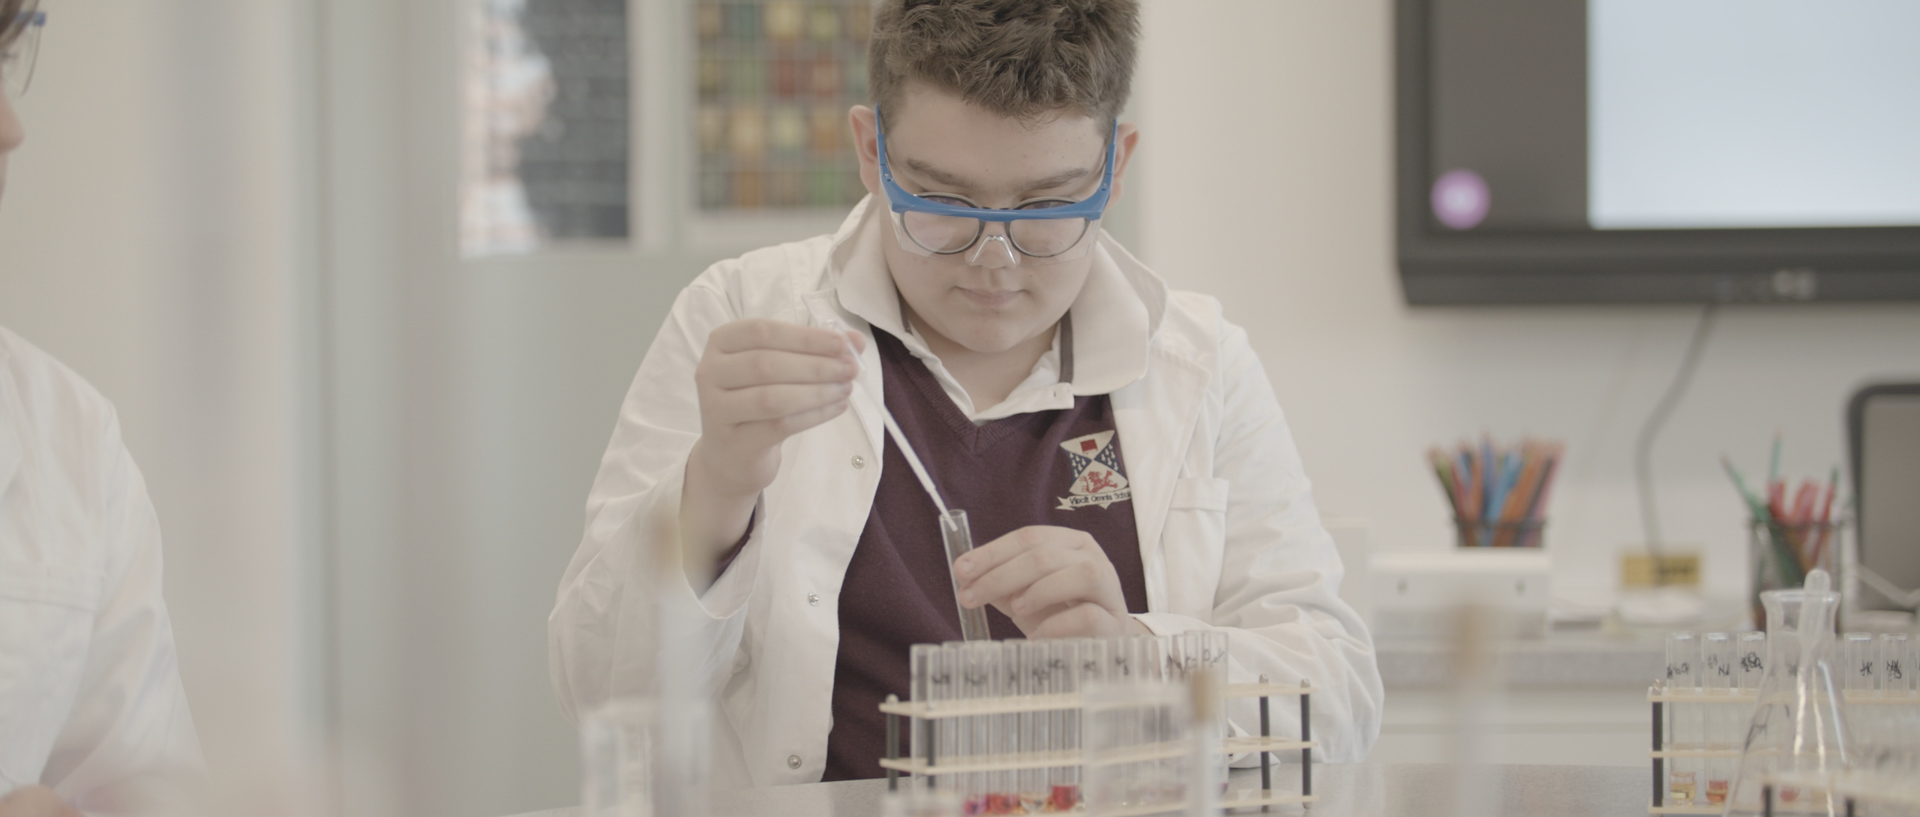 British International School of Timisoara commercial by popotam productions video agency before color grading